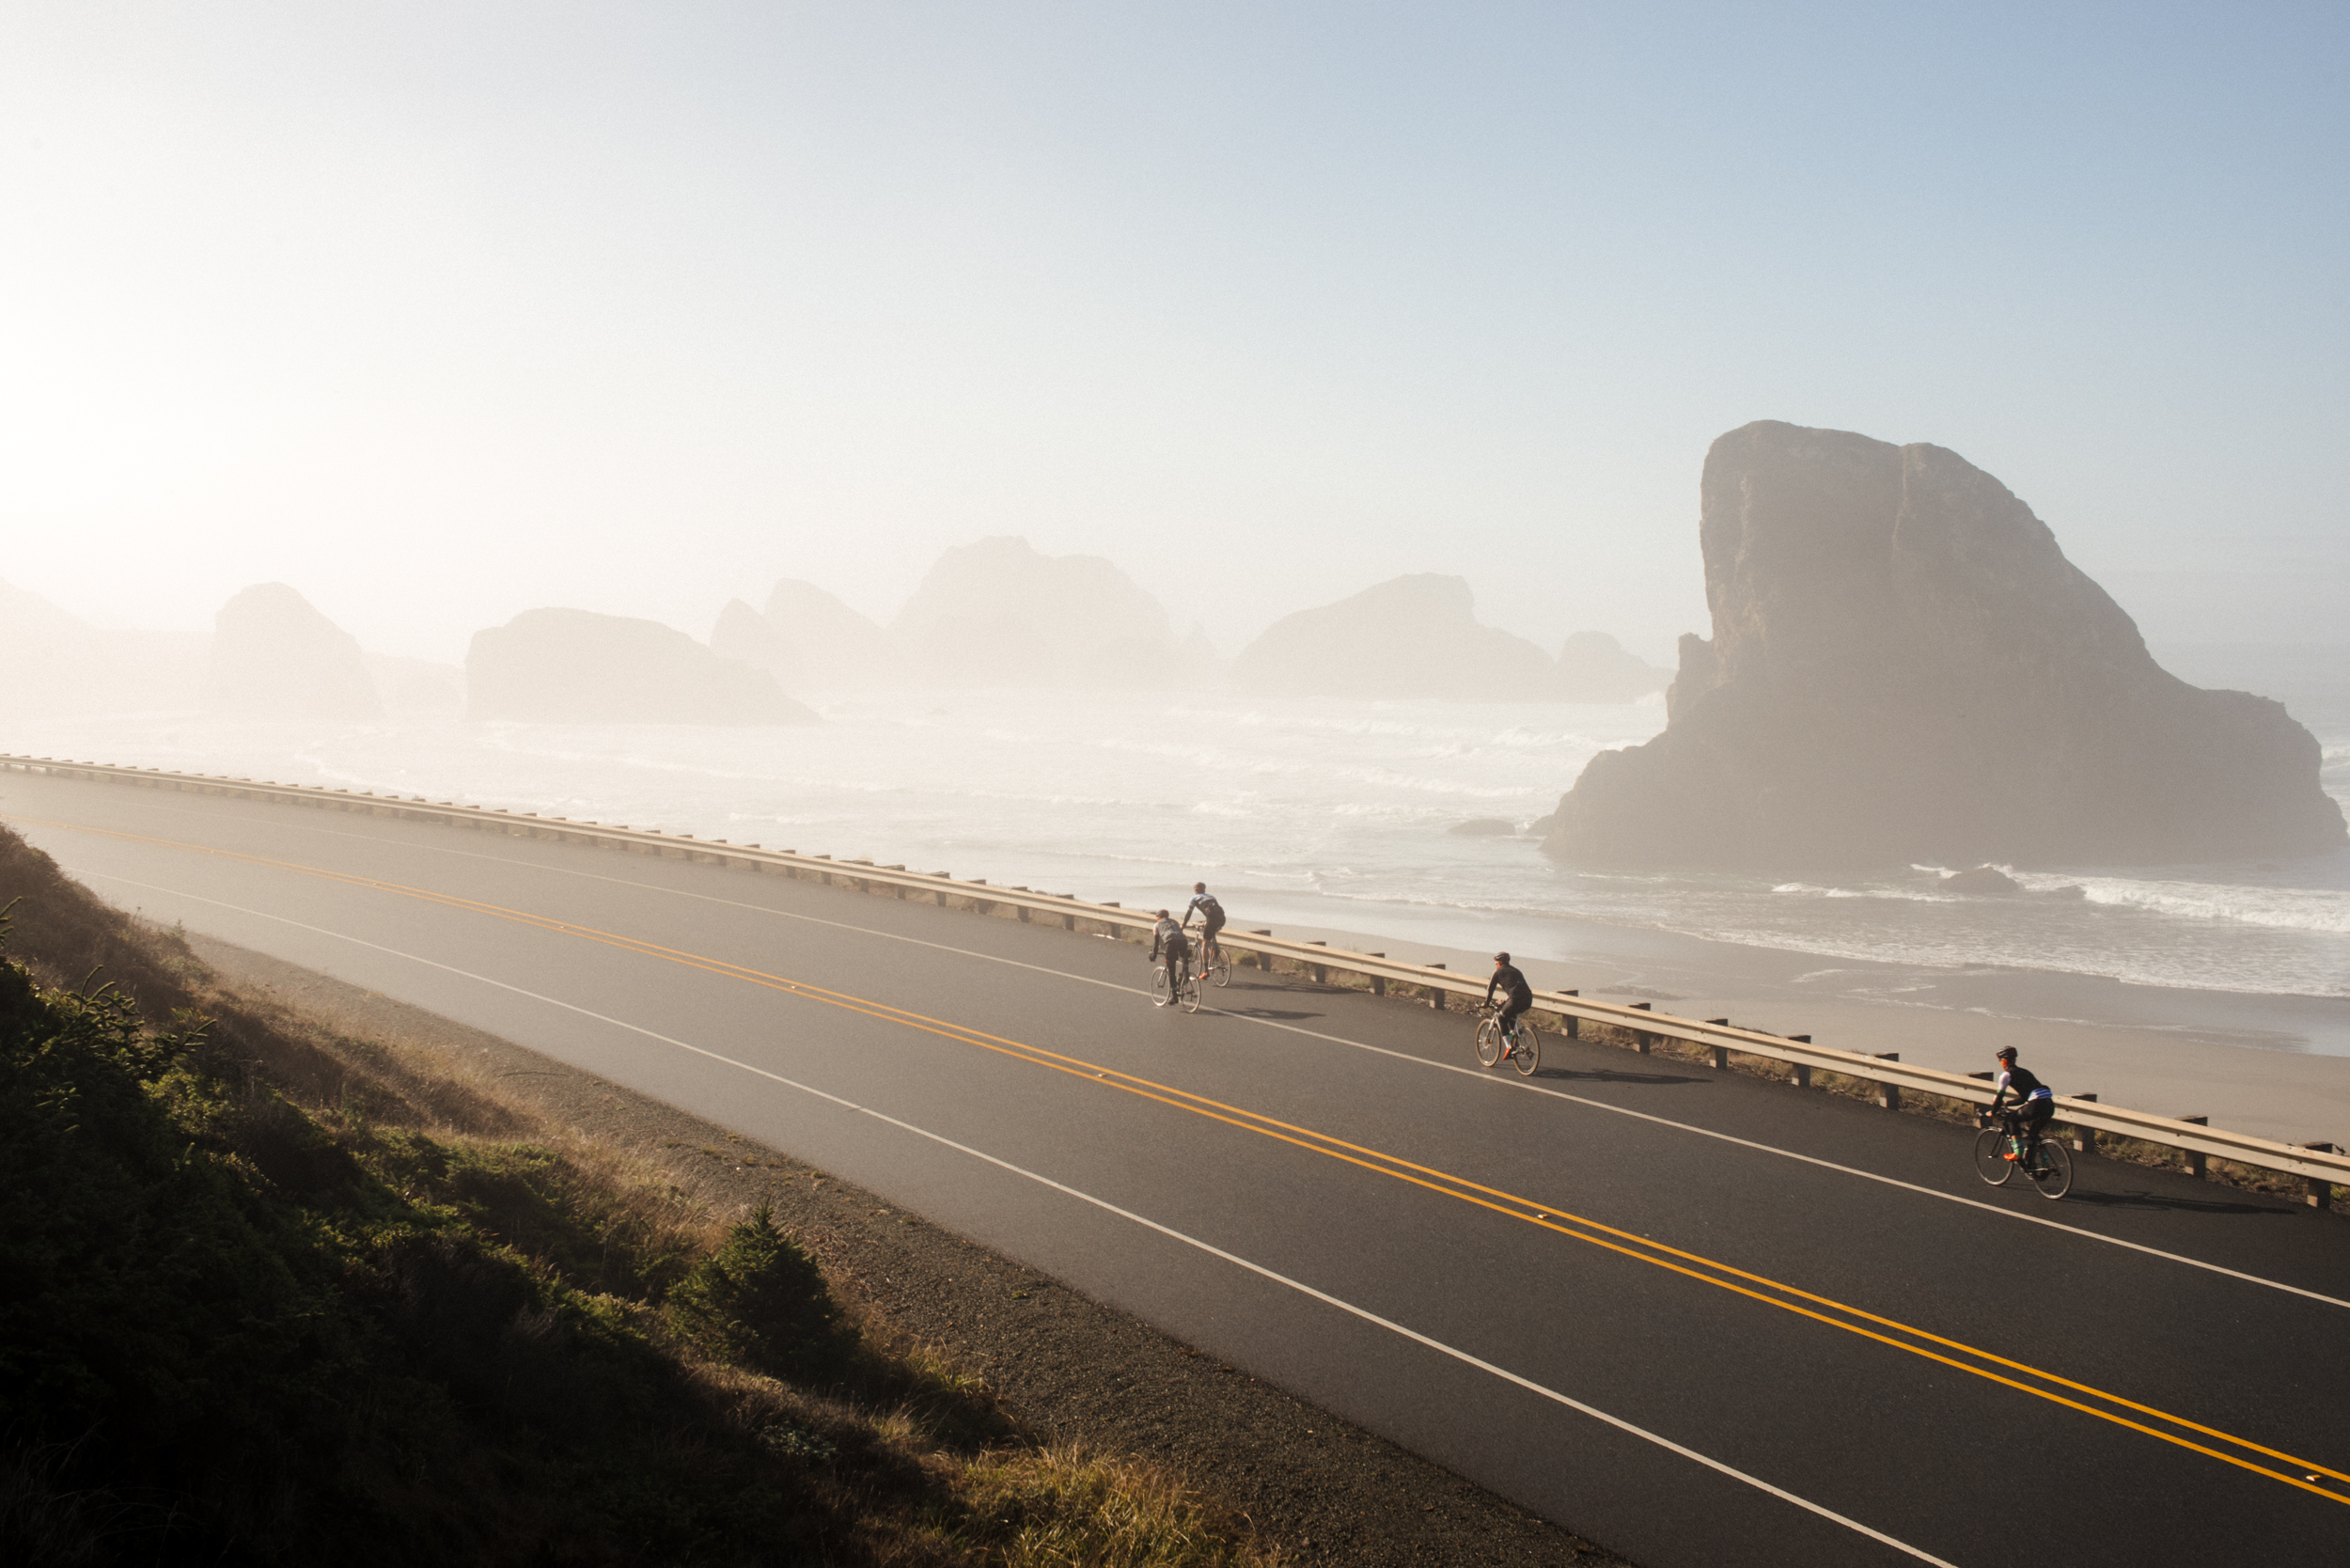 The Coast Classic - 234 miles, 2-days, 13,000 ft. Self-Supported BrevetPortland to Lincoln City September 20th-21st, 2019